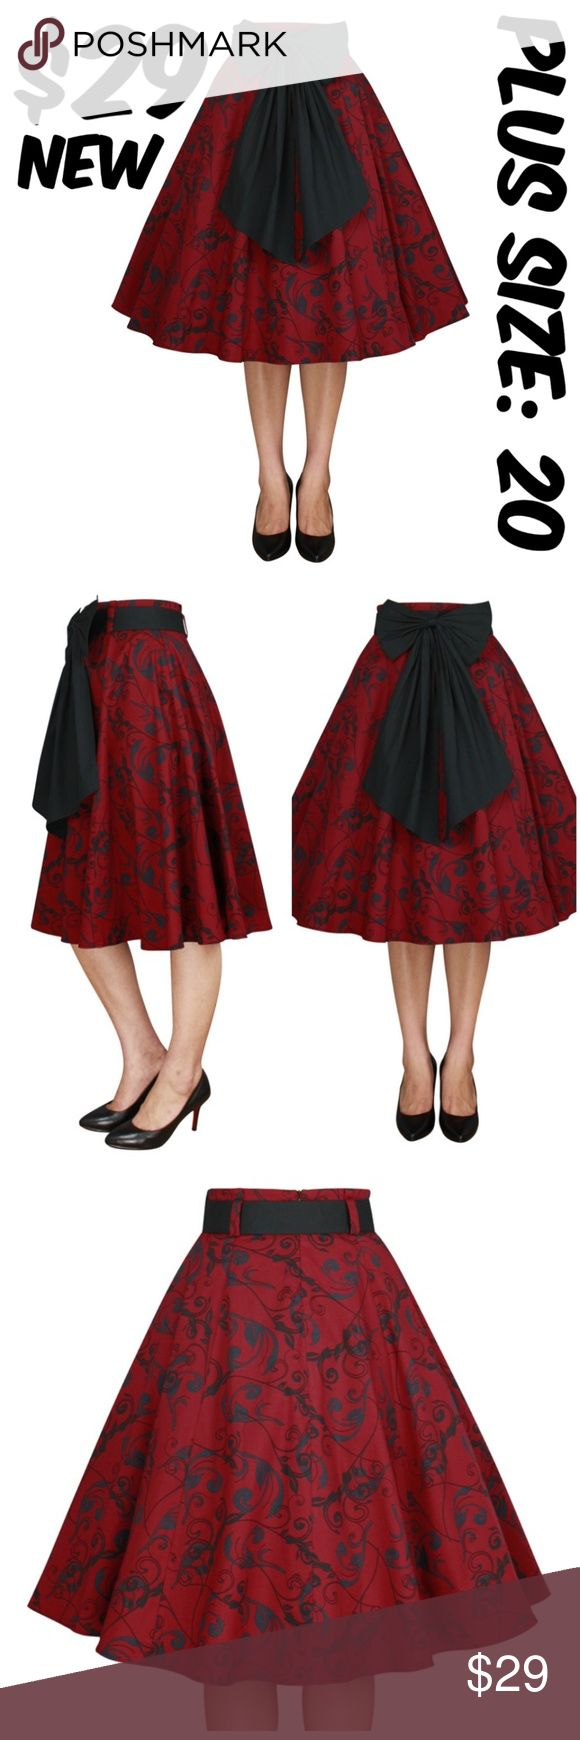 """Bow Plus Size Pin Up Full Circle Skirt 1950s Cloth Bow Plus Size Pin Up Full Circle Skirt 1950s Clothing WAIST: 40"""" LENGTH: 30"""" CONDITION: NEW TAG SIZE IS 20 #CS Skirts A-Line or Full"""